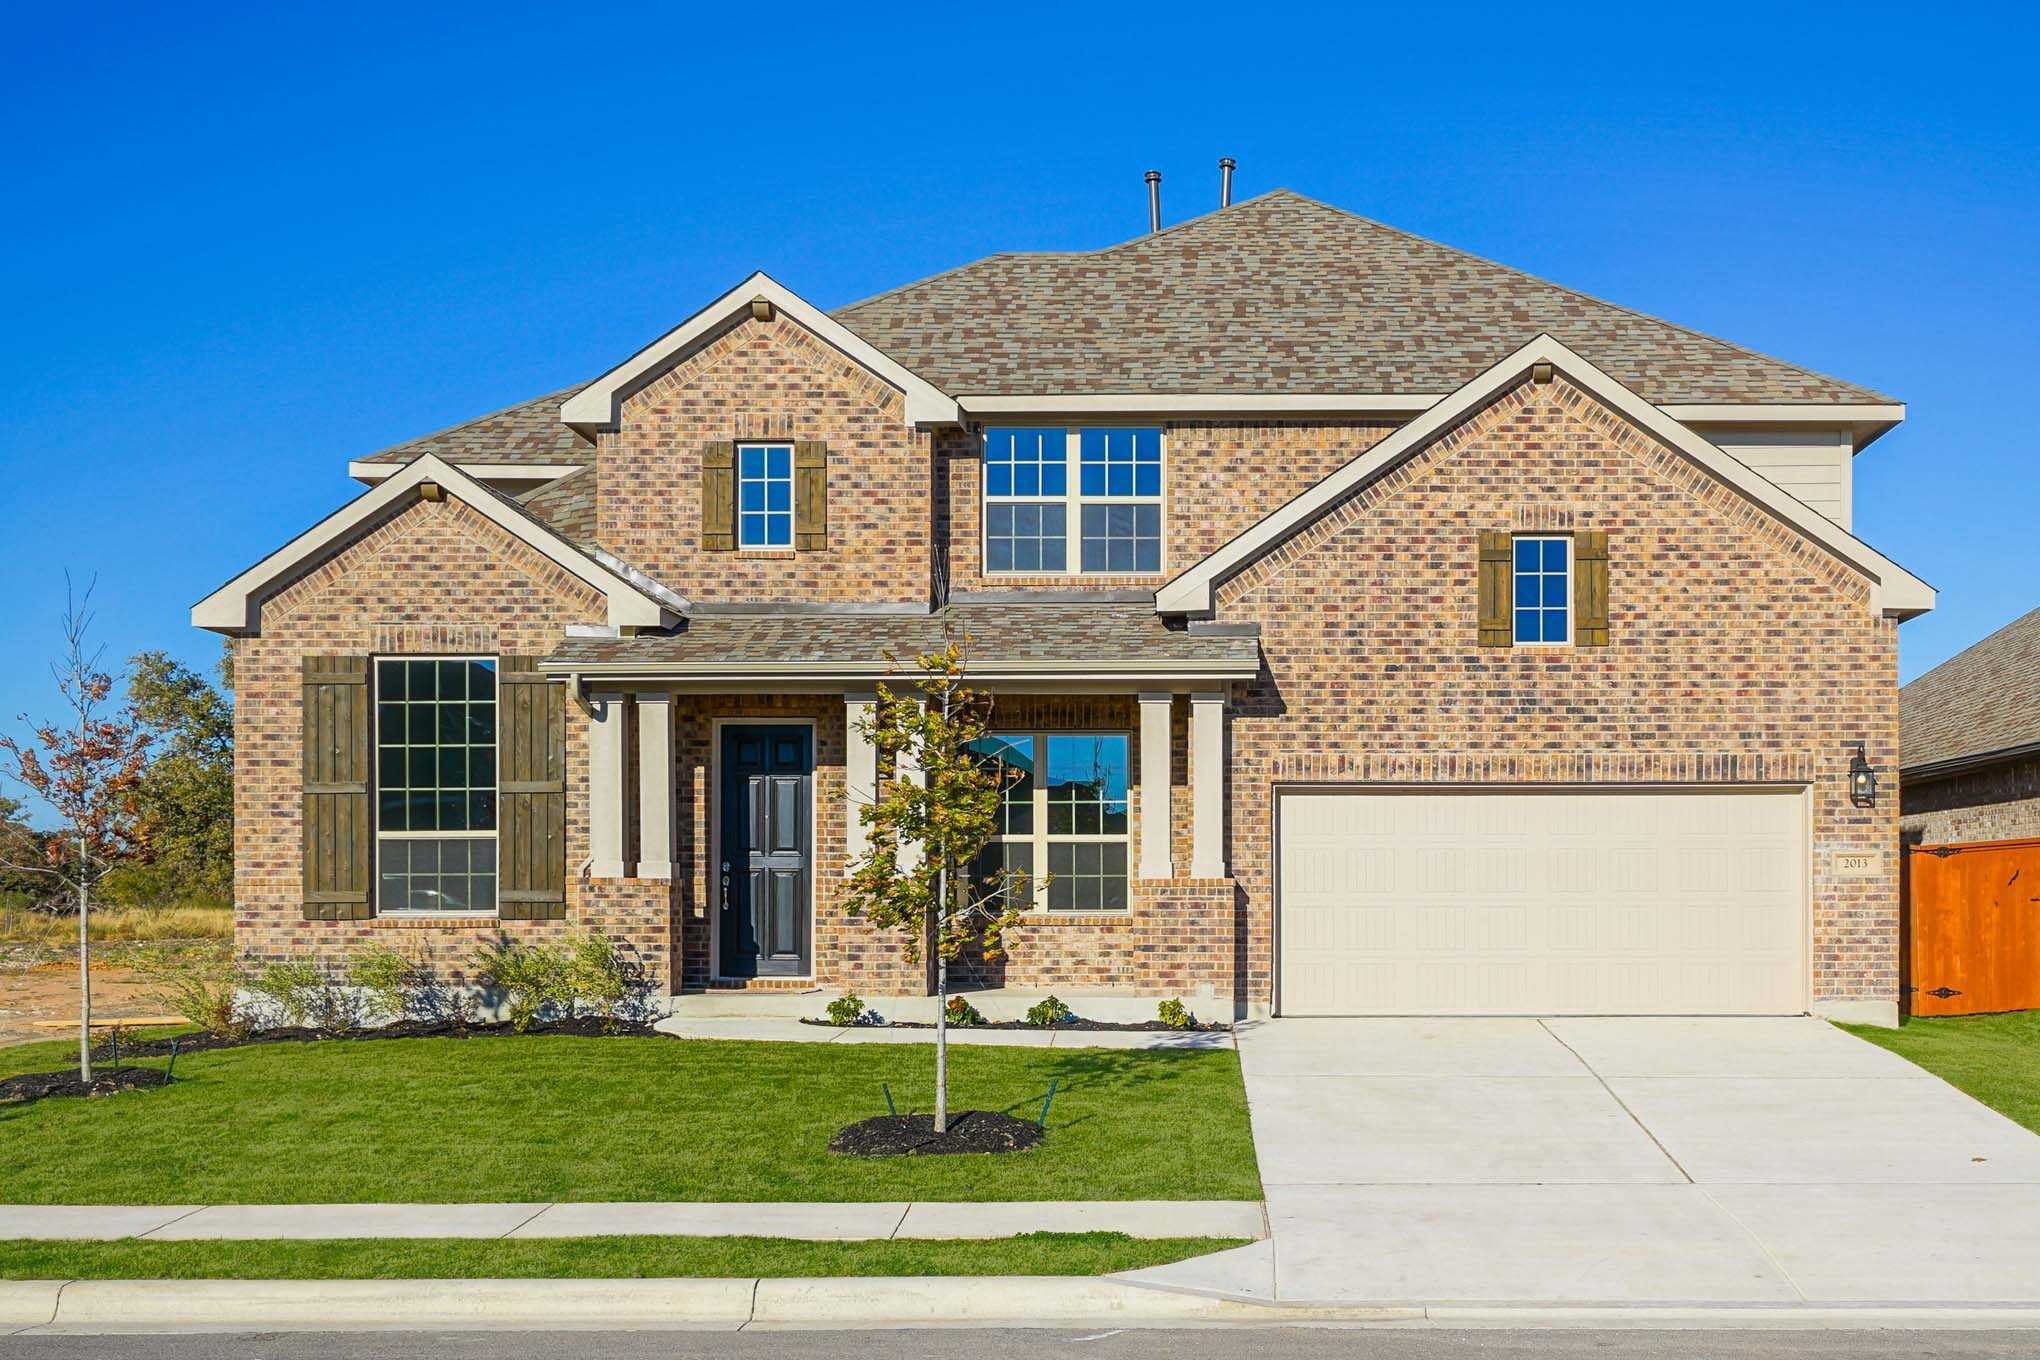 Cost to build a new house in austin - New Homes In Austin Tx New Home Source